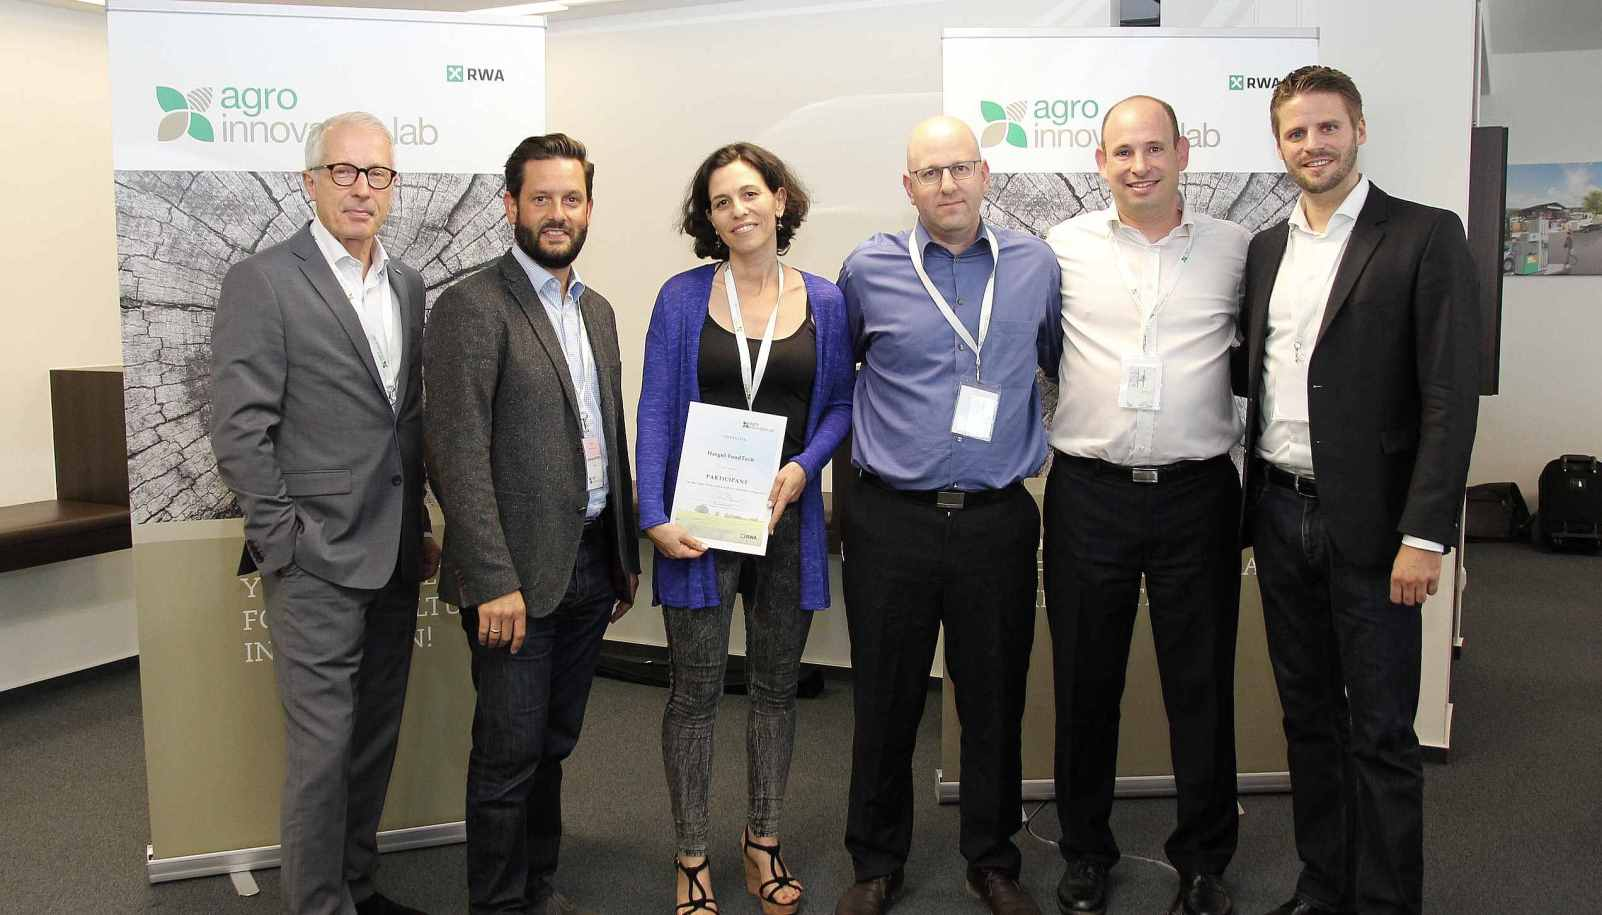 From right, Agro Innovation Lab CEO Reinhard Bauer, Hargol FoodTech CEO Dror Tamir and COO Ben Friedman standing with RWA managers after winning the award. Photo: courtesy